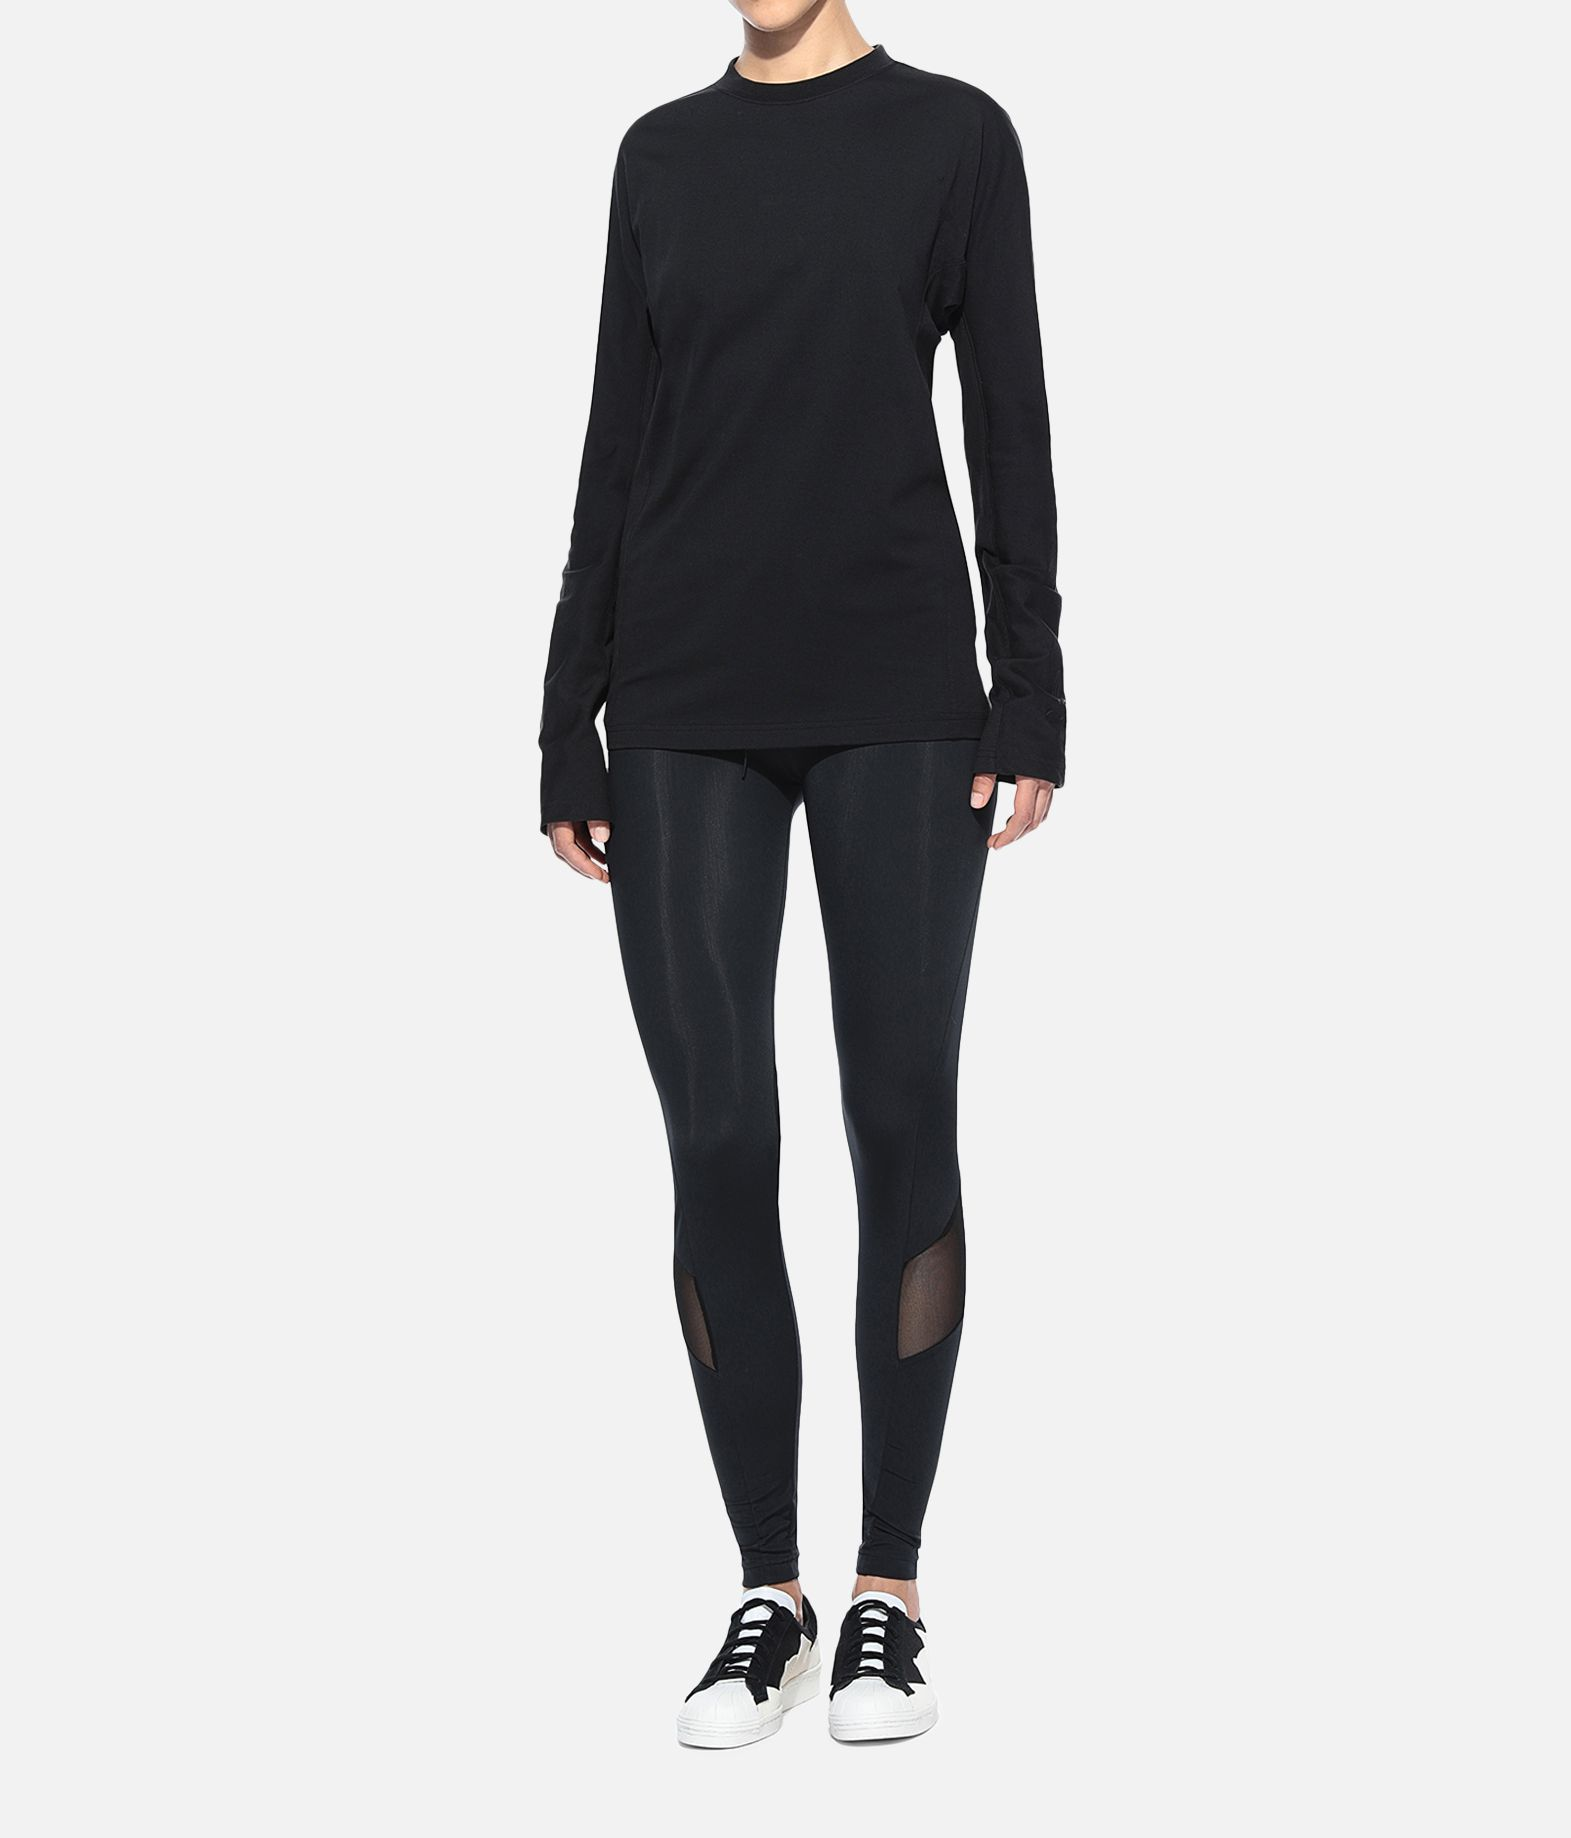 Y-3 Y-3 New Classic Tights Leggings Donna a